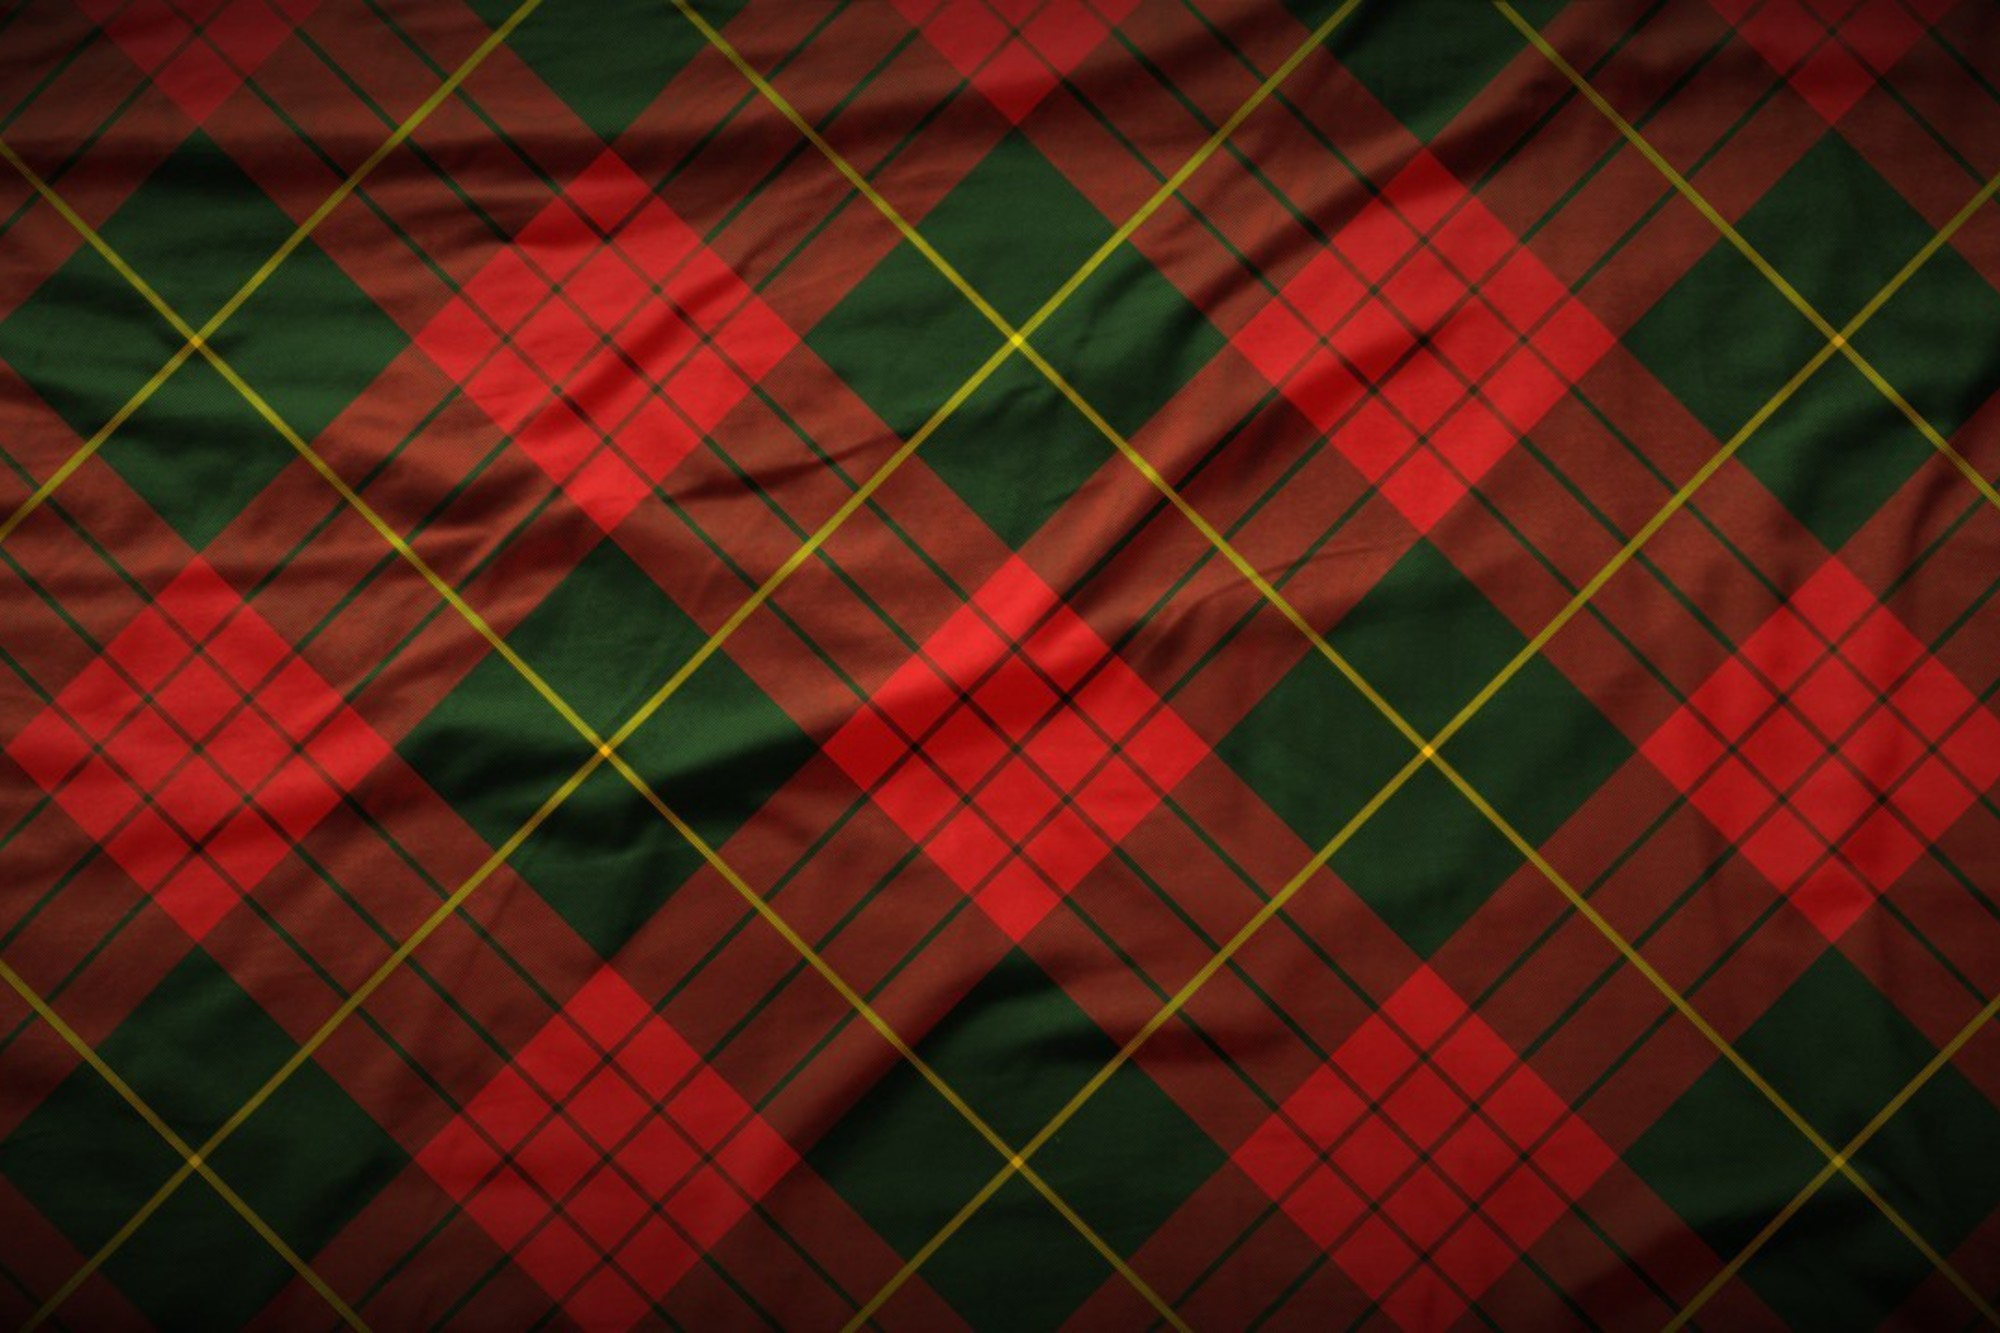 textures artwork plaid tartan wallpaper. Black Bedroom Furniture Sets. Home Design Ideas